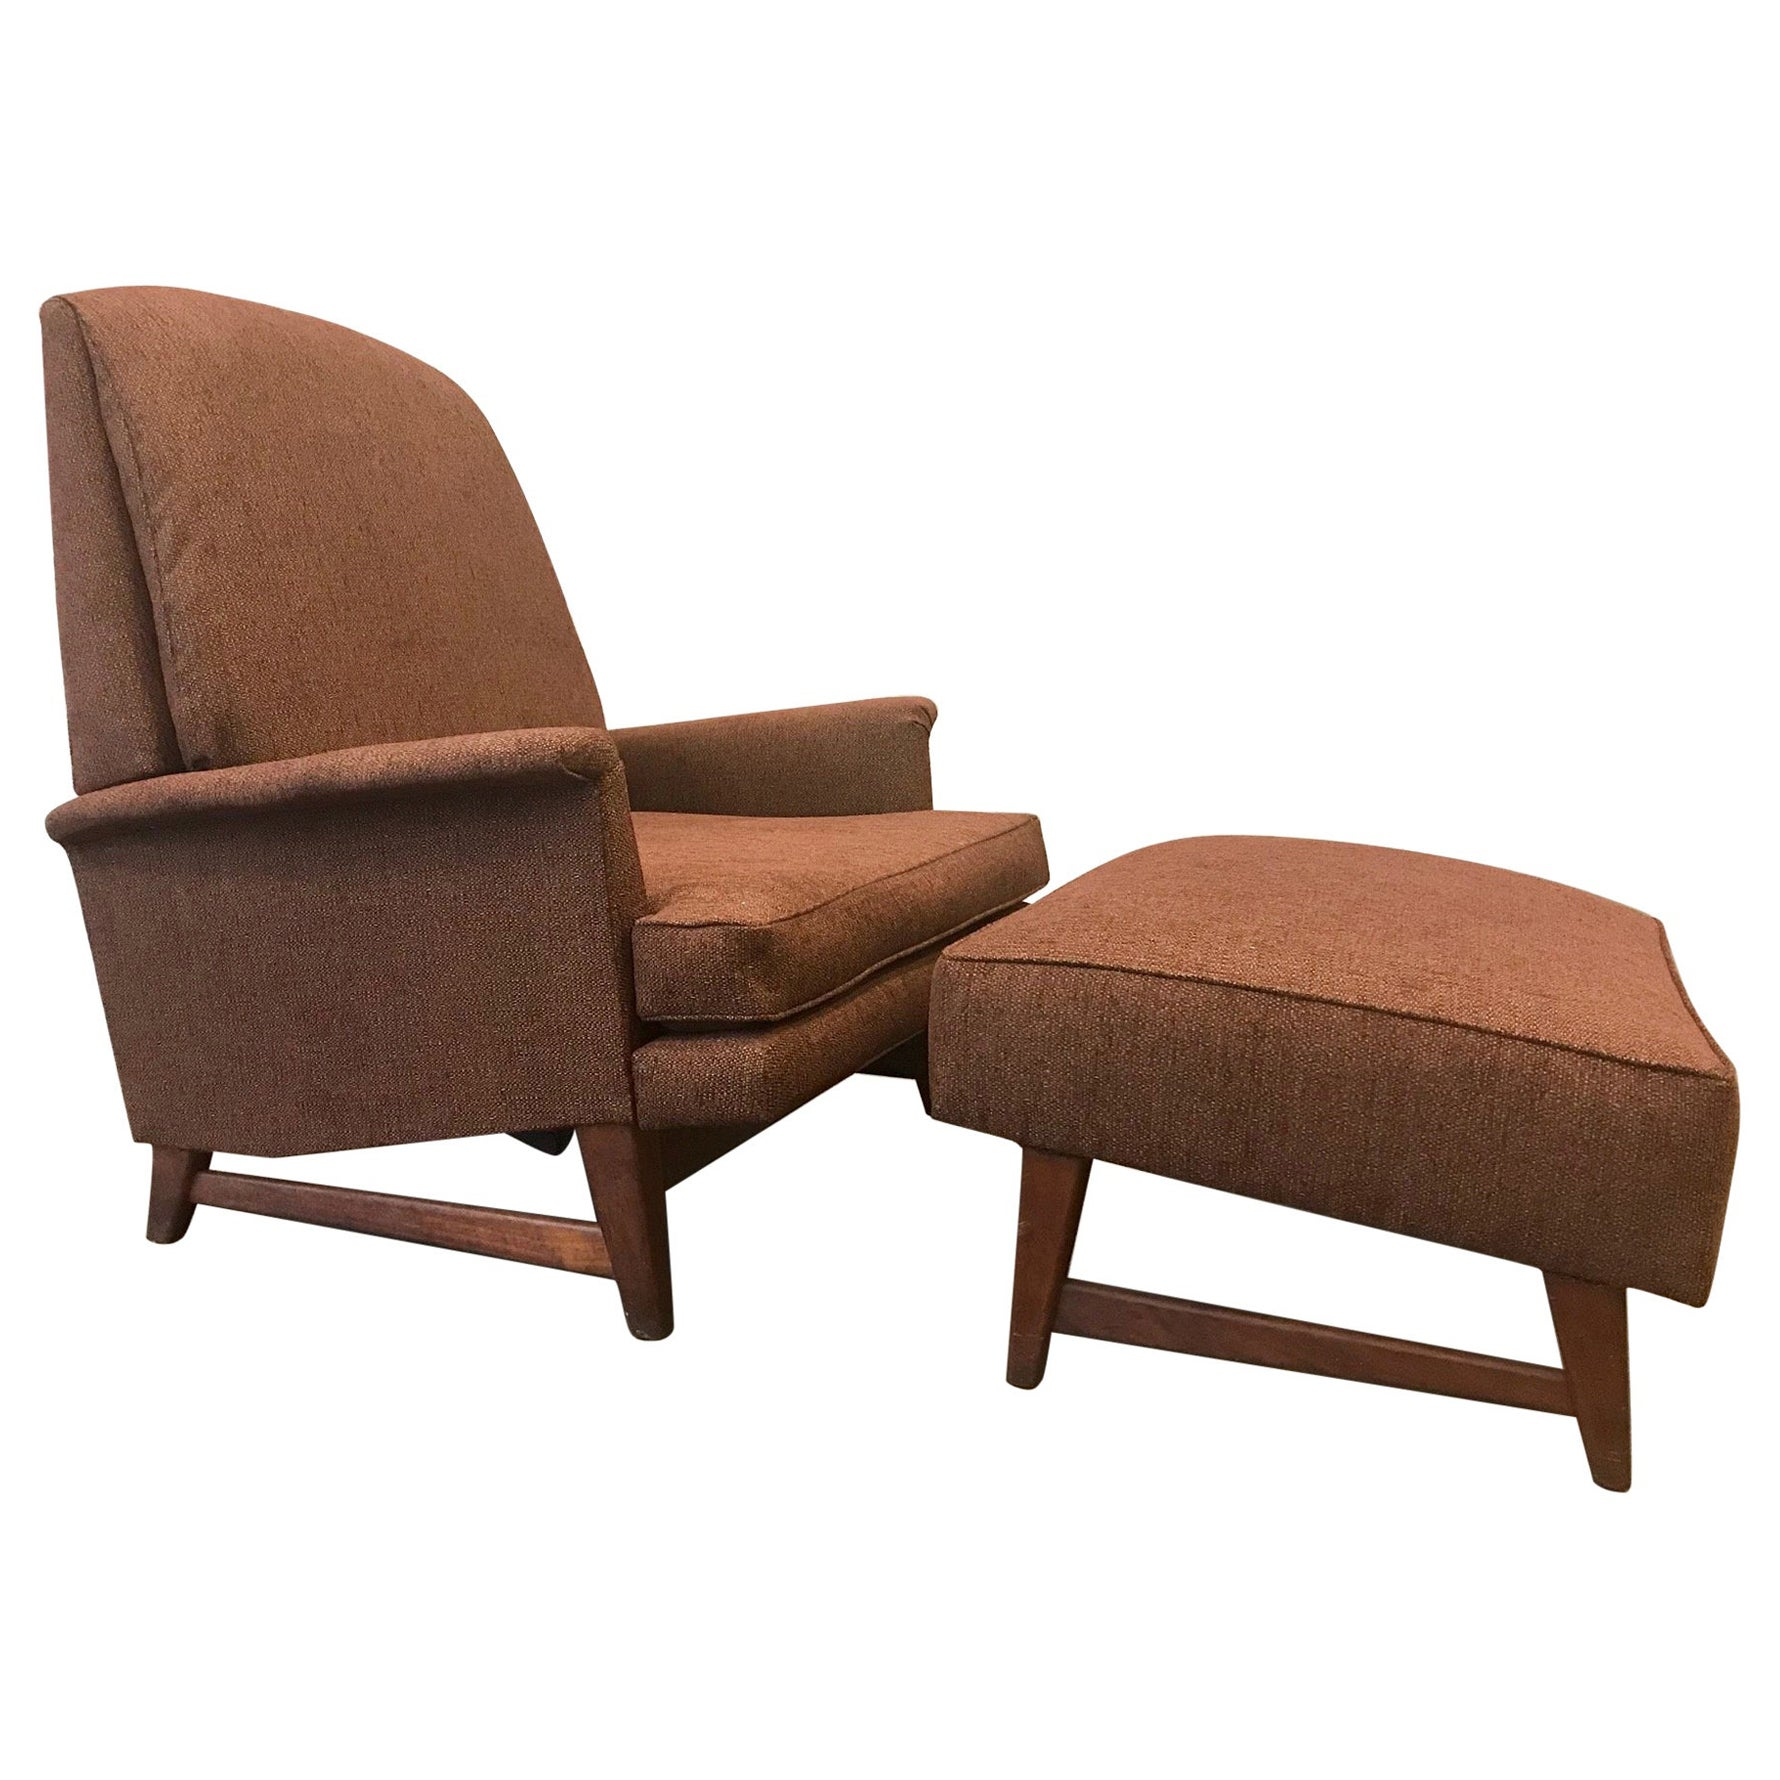 Reclining Lounge Chair and Ottoman by Selig